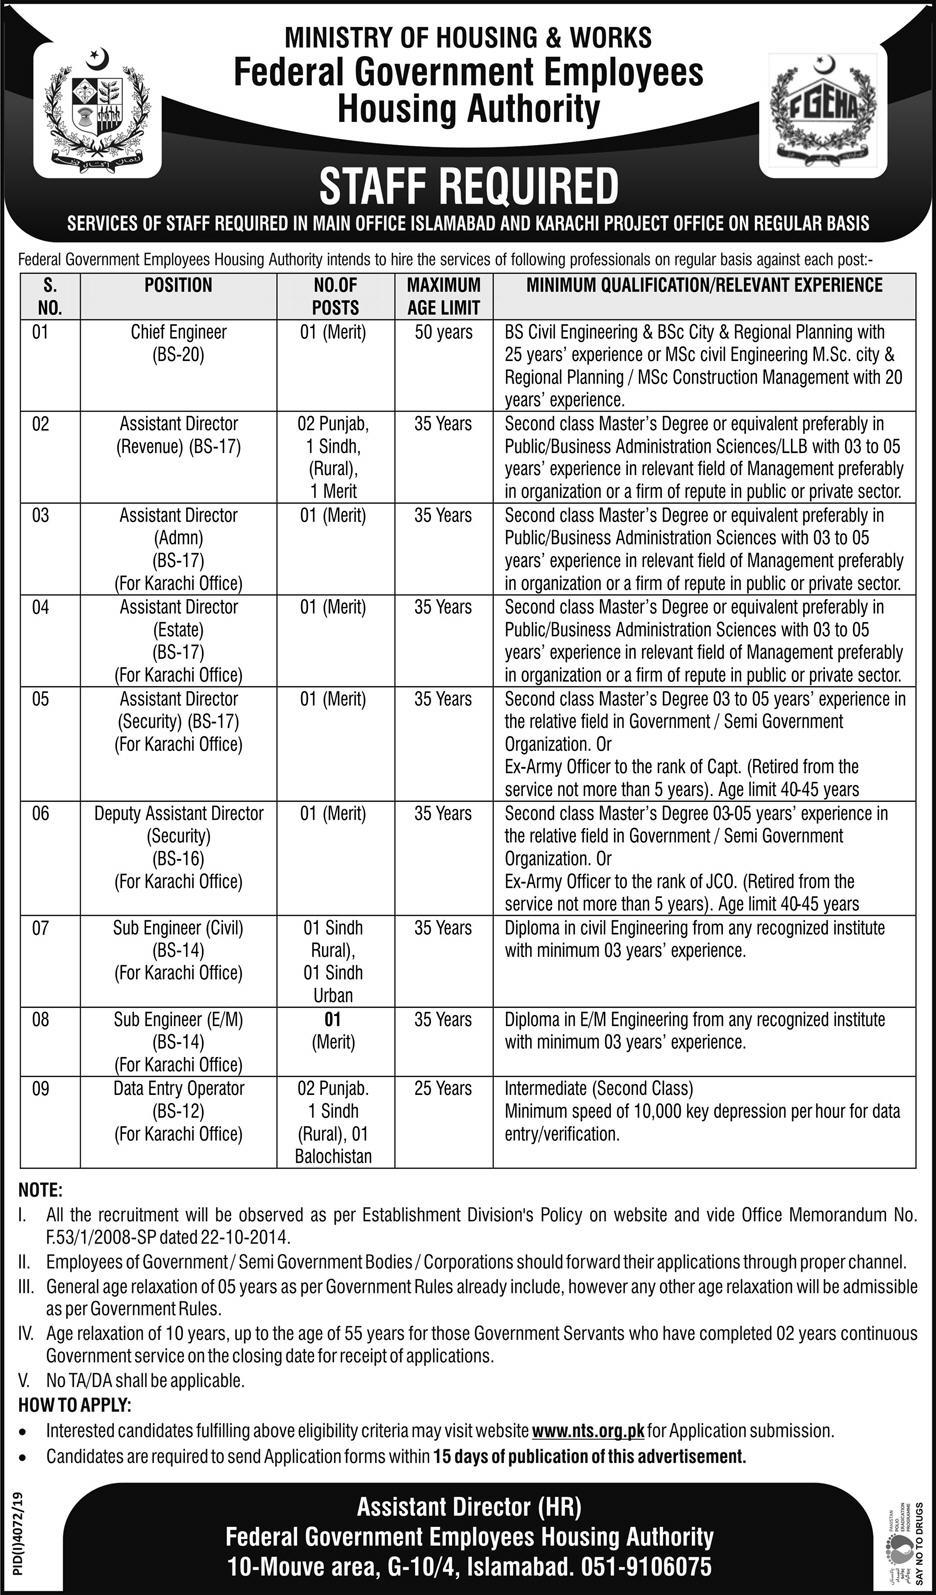 Vacancies in Federal Govt Employees Housing Authorities